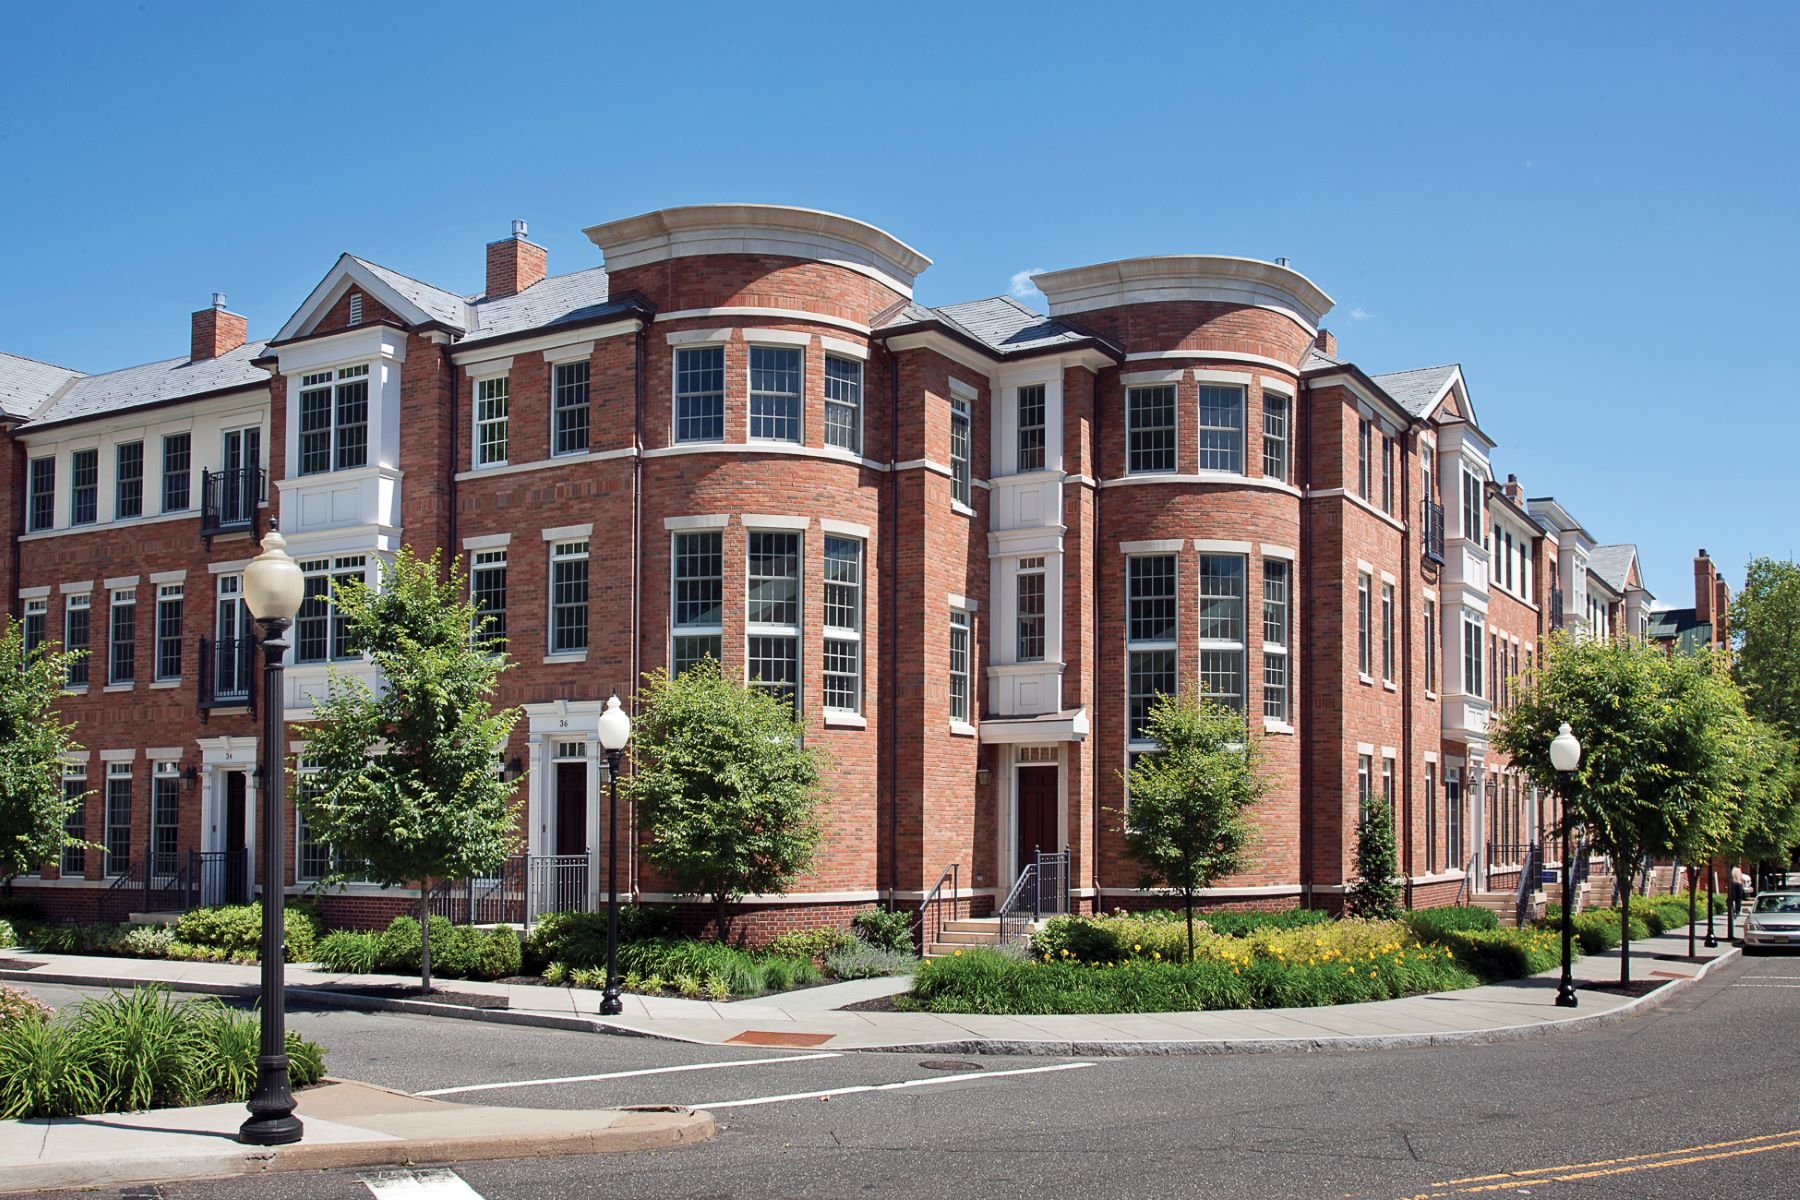 Property vì Bán tại Luxury Townhome Living at its Finest 18 Paul Robeson Place, Princeton, New Jersey 08542 Hoa Kỳ